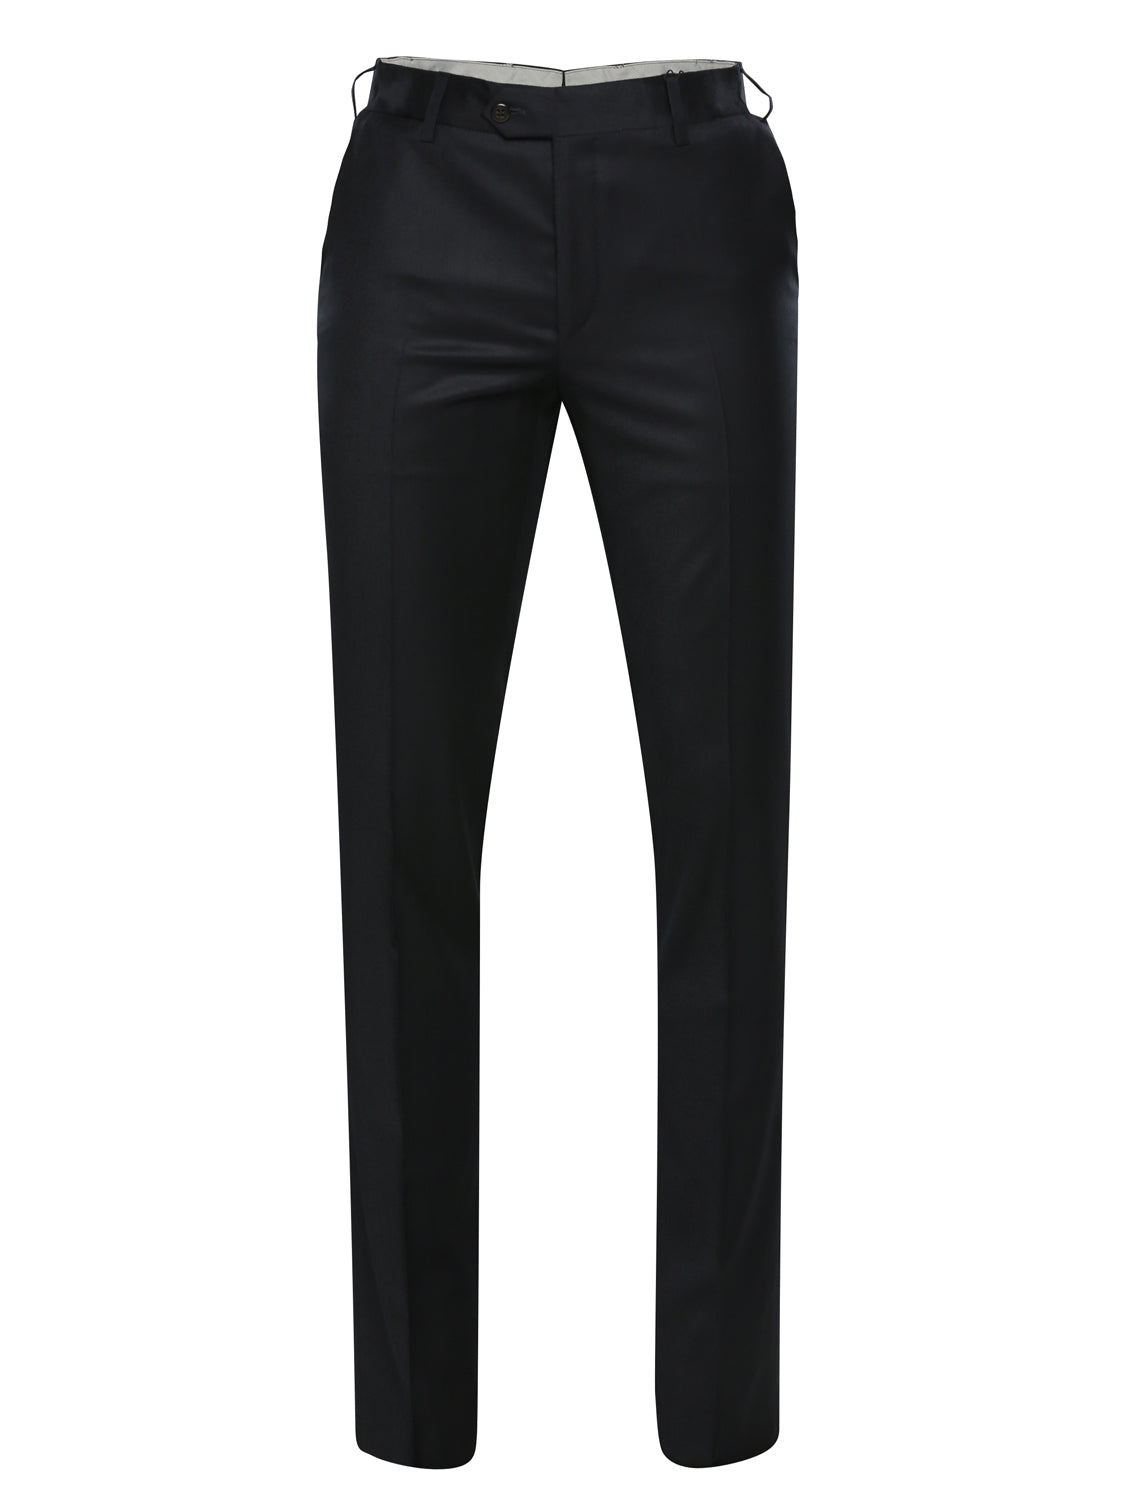 Corneliani Classic Trousers (Navy) - Union 22